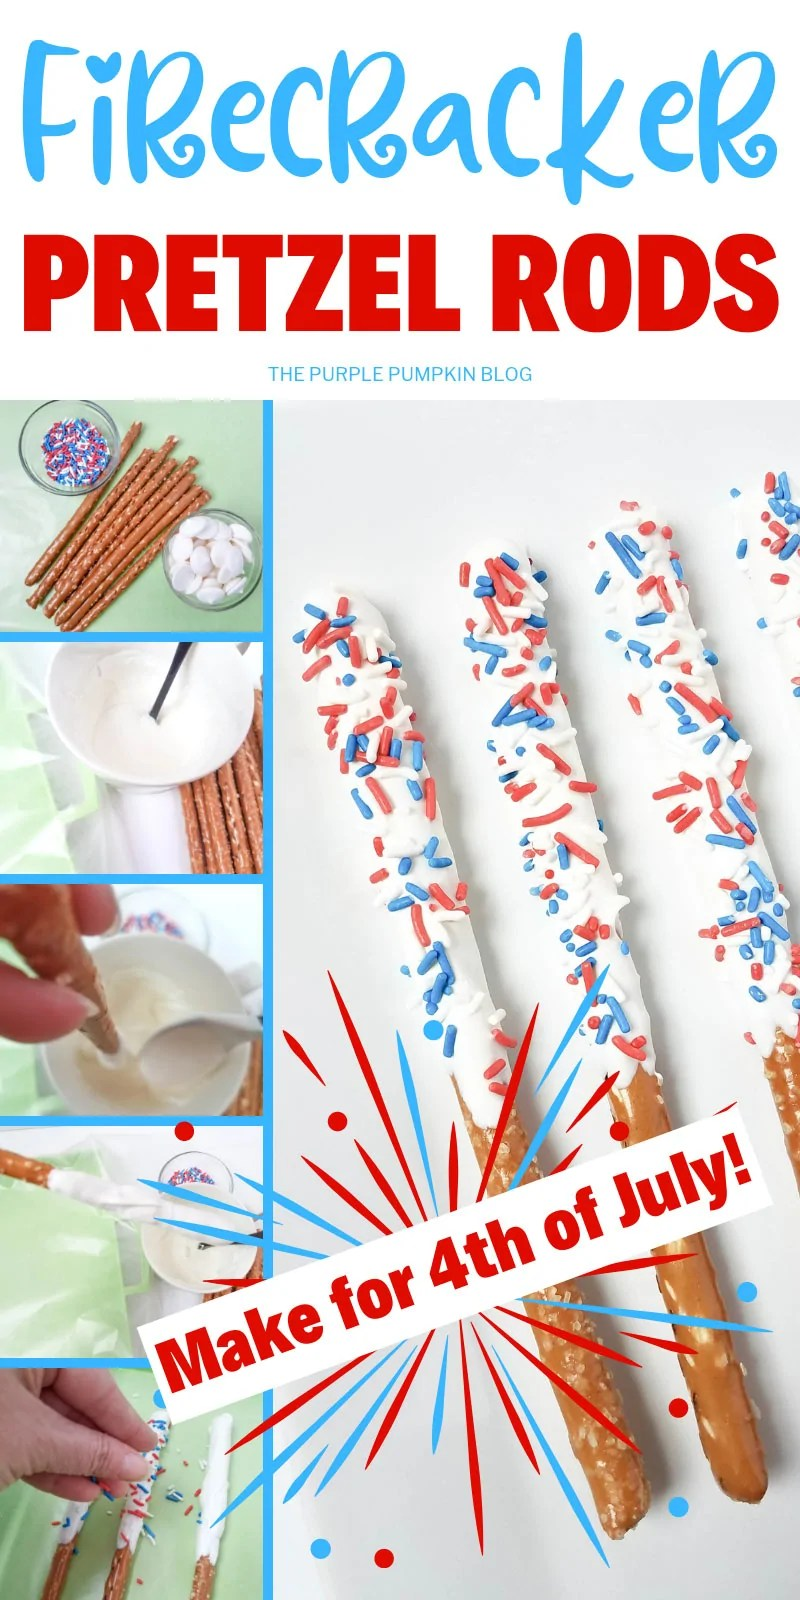 A collage of step-by-step photos showing how to make firecrack pretzel rods.